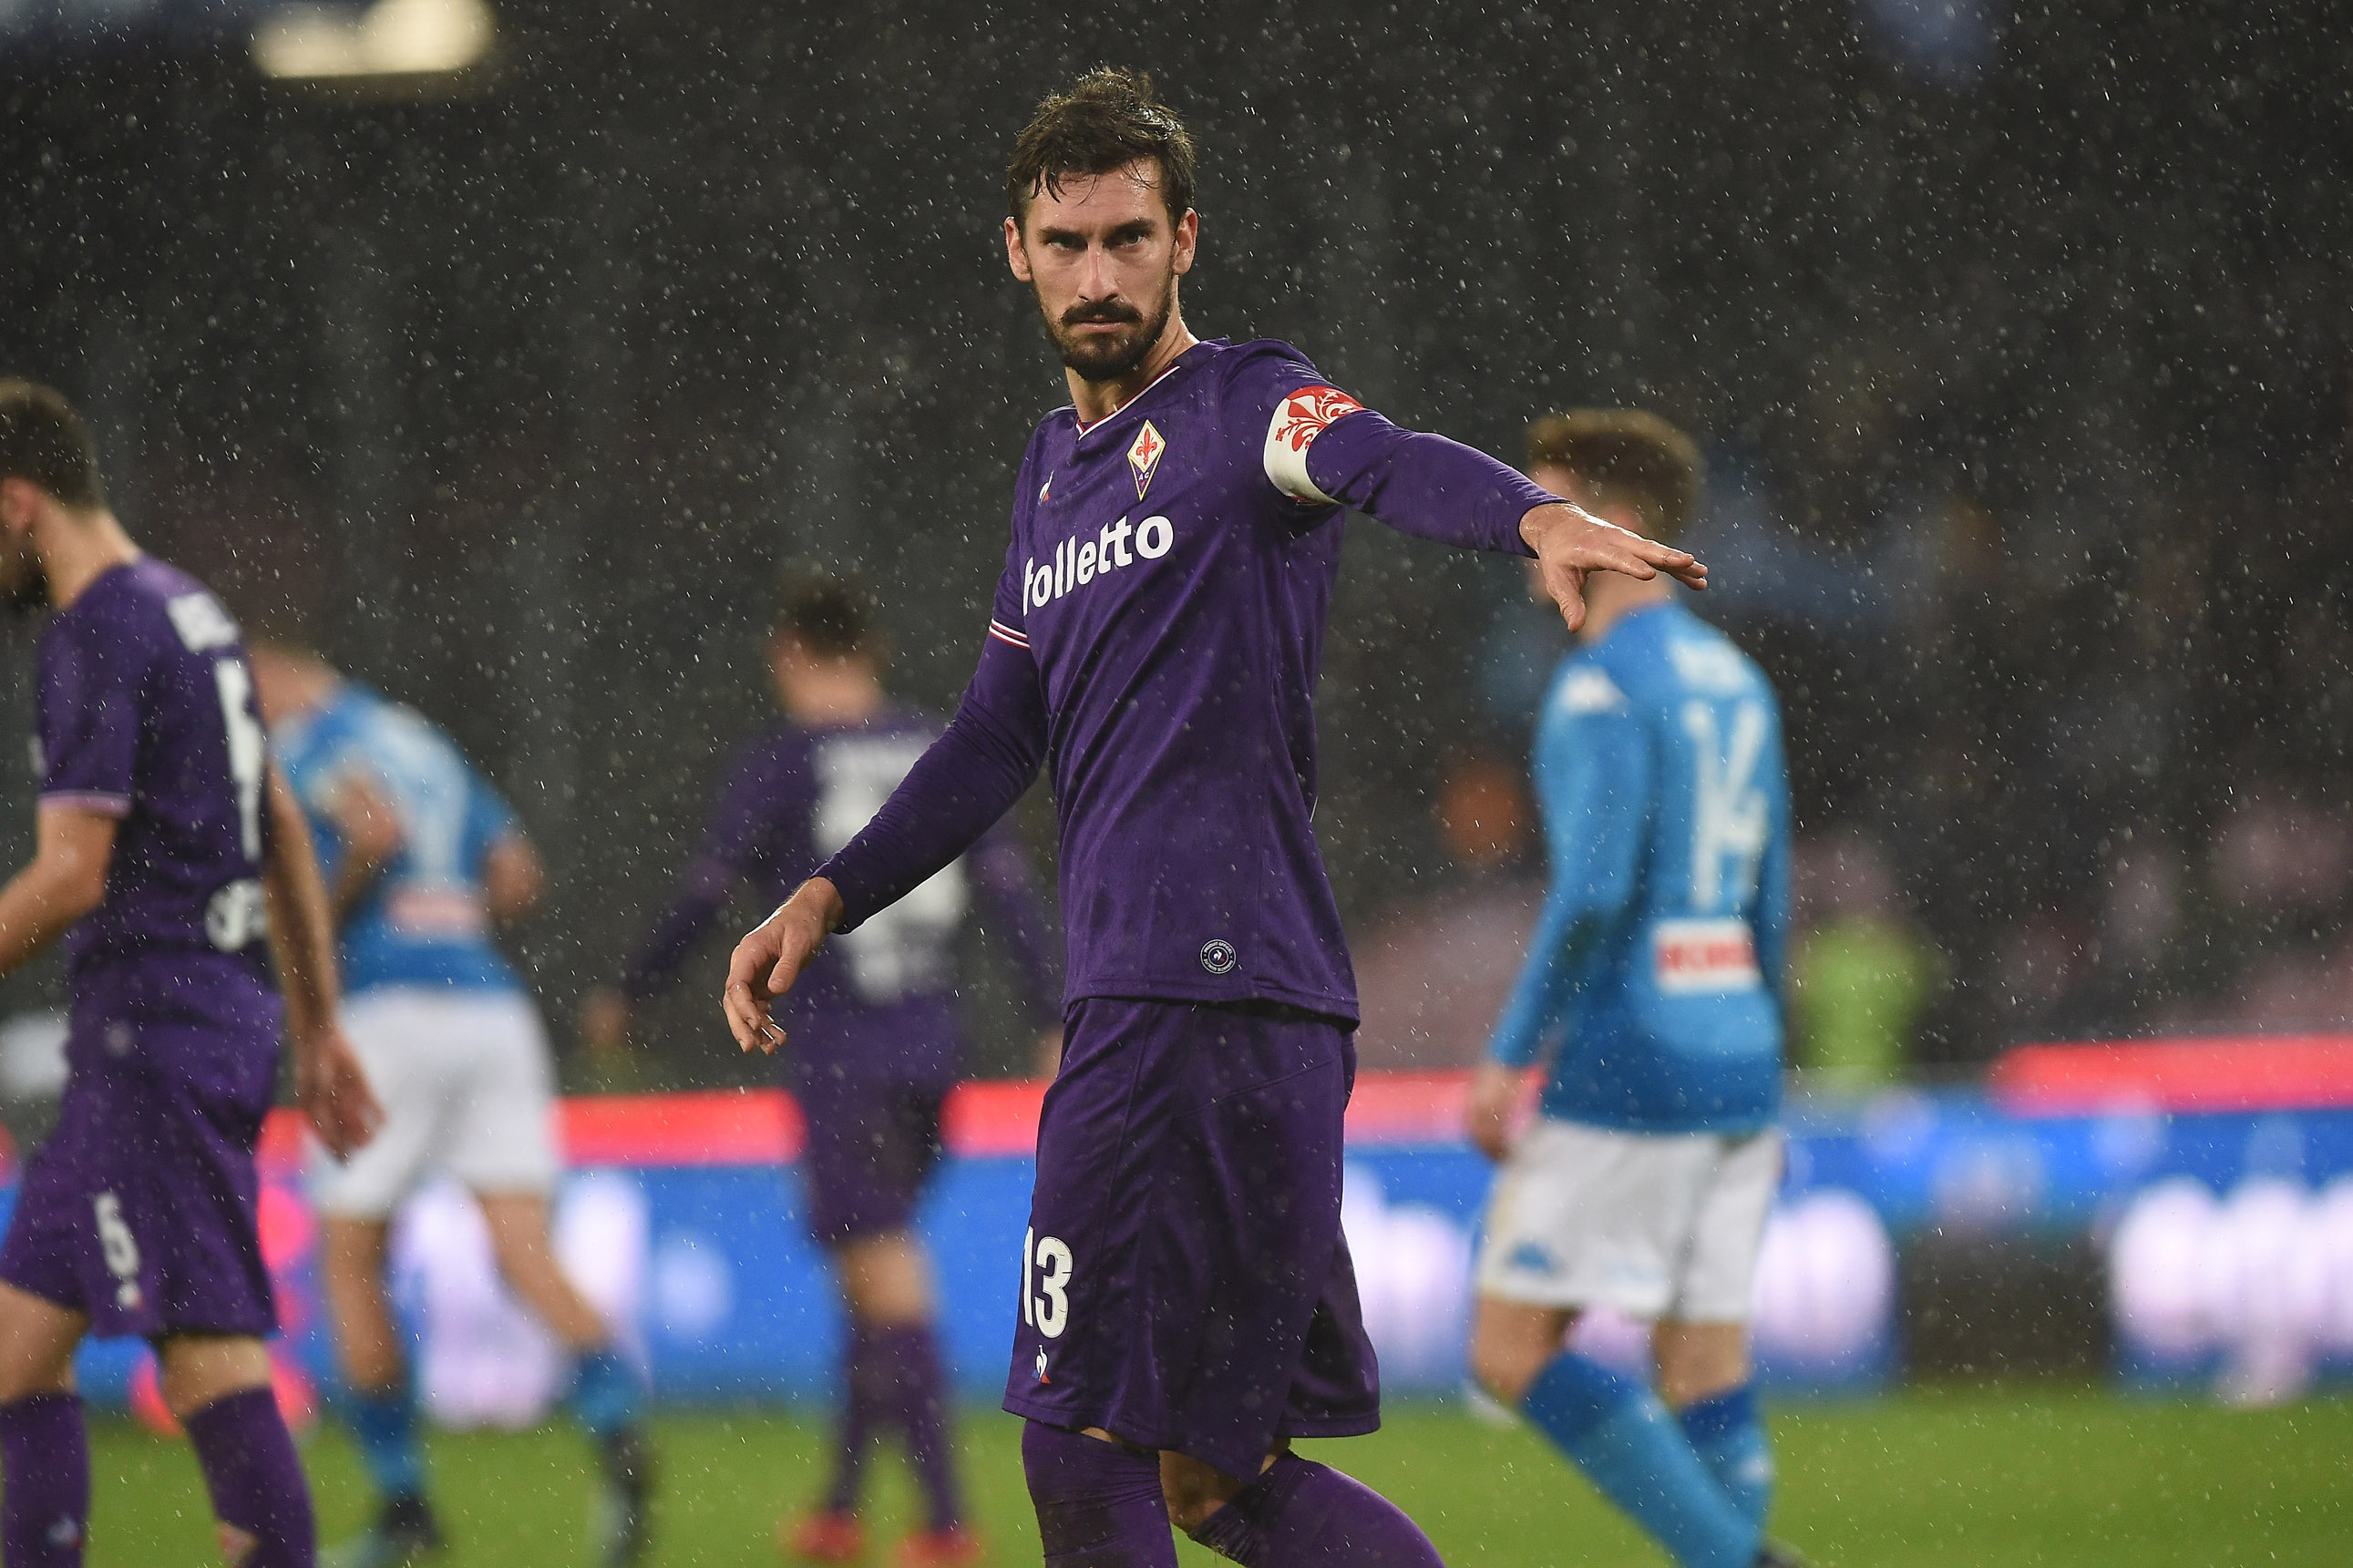 Fiorentina Captain Davide Astori Passes Away At 31